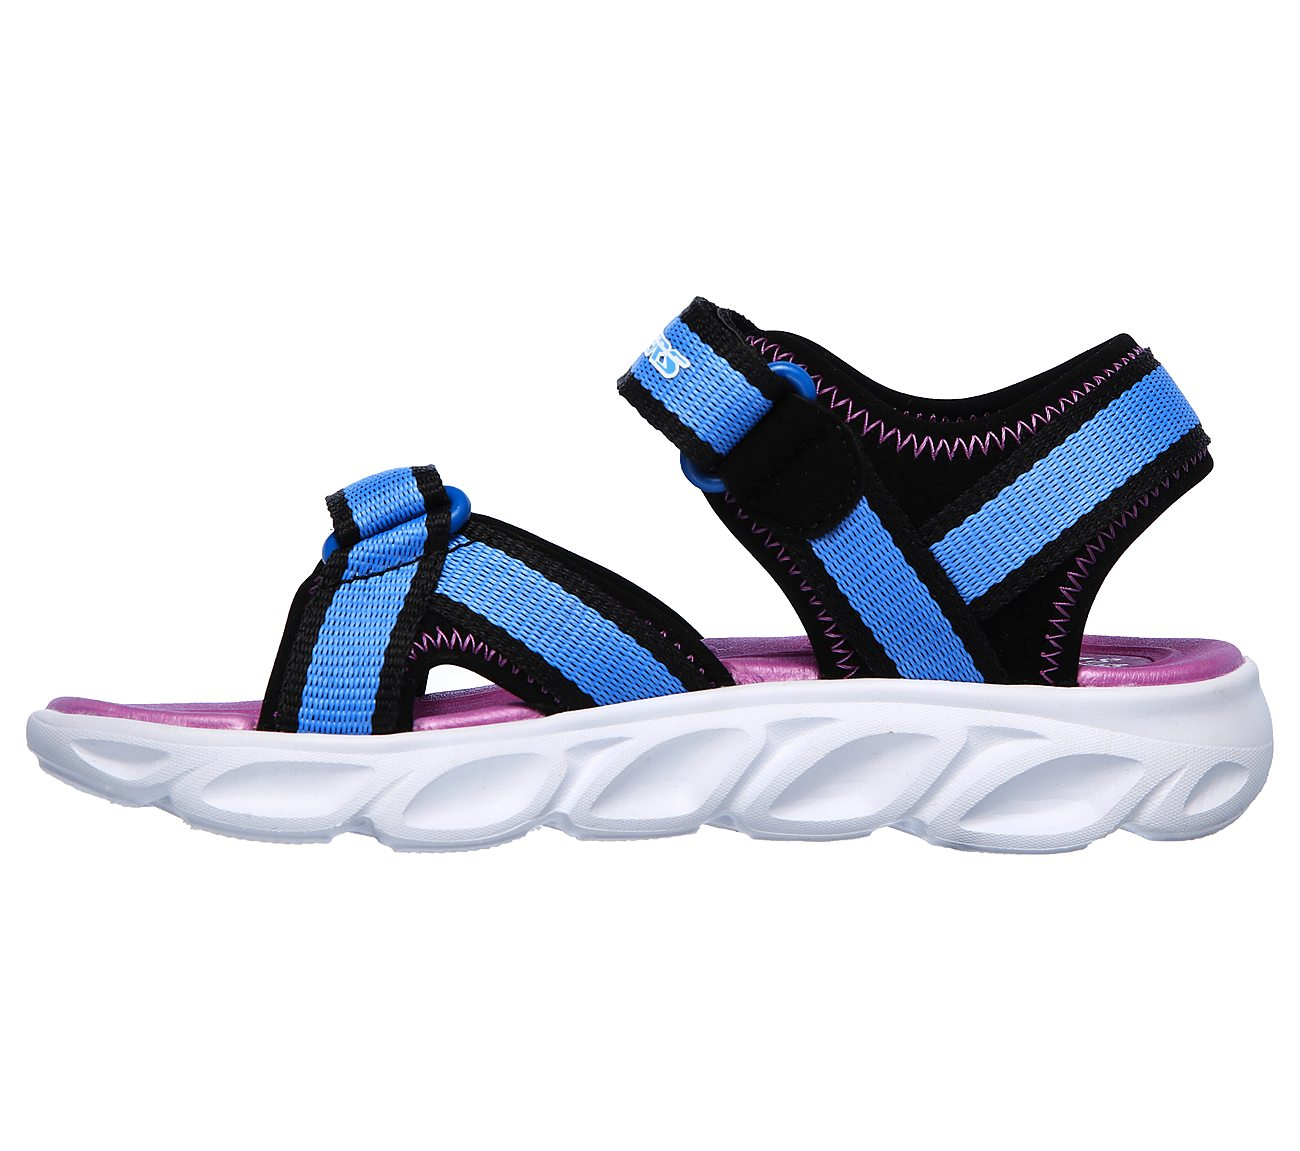 Skechers SPLASH ZOOMS 20215 Sandale BlackBlue